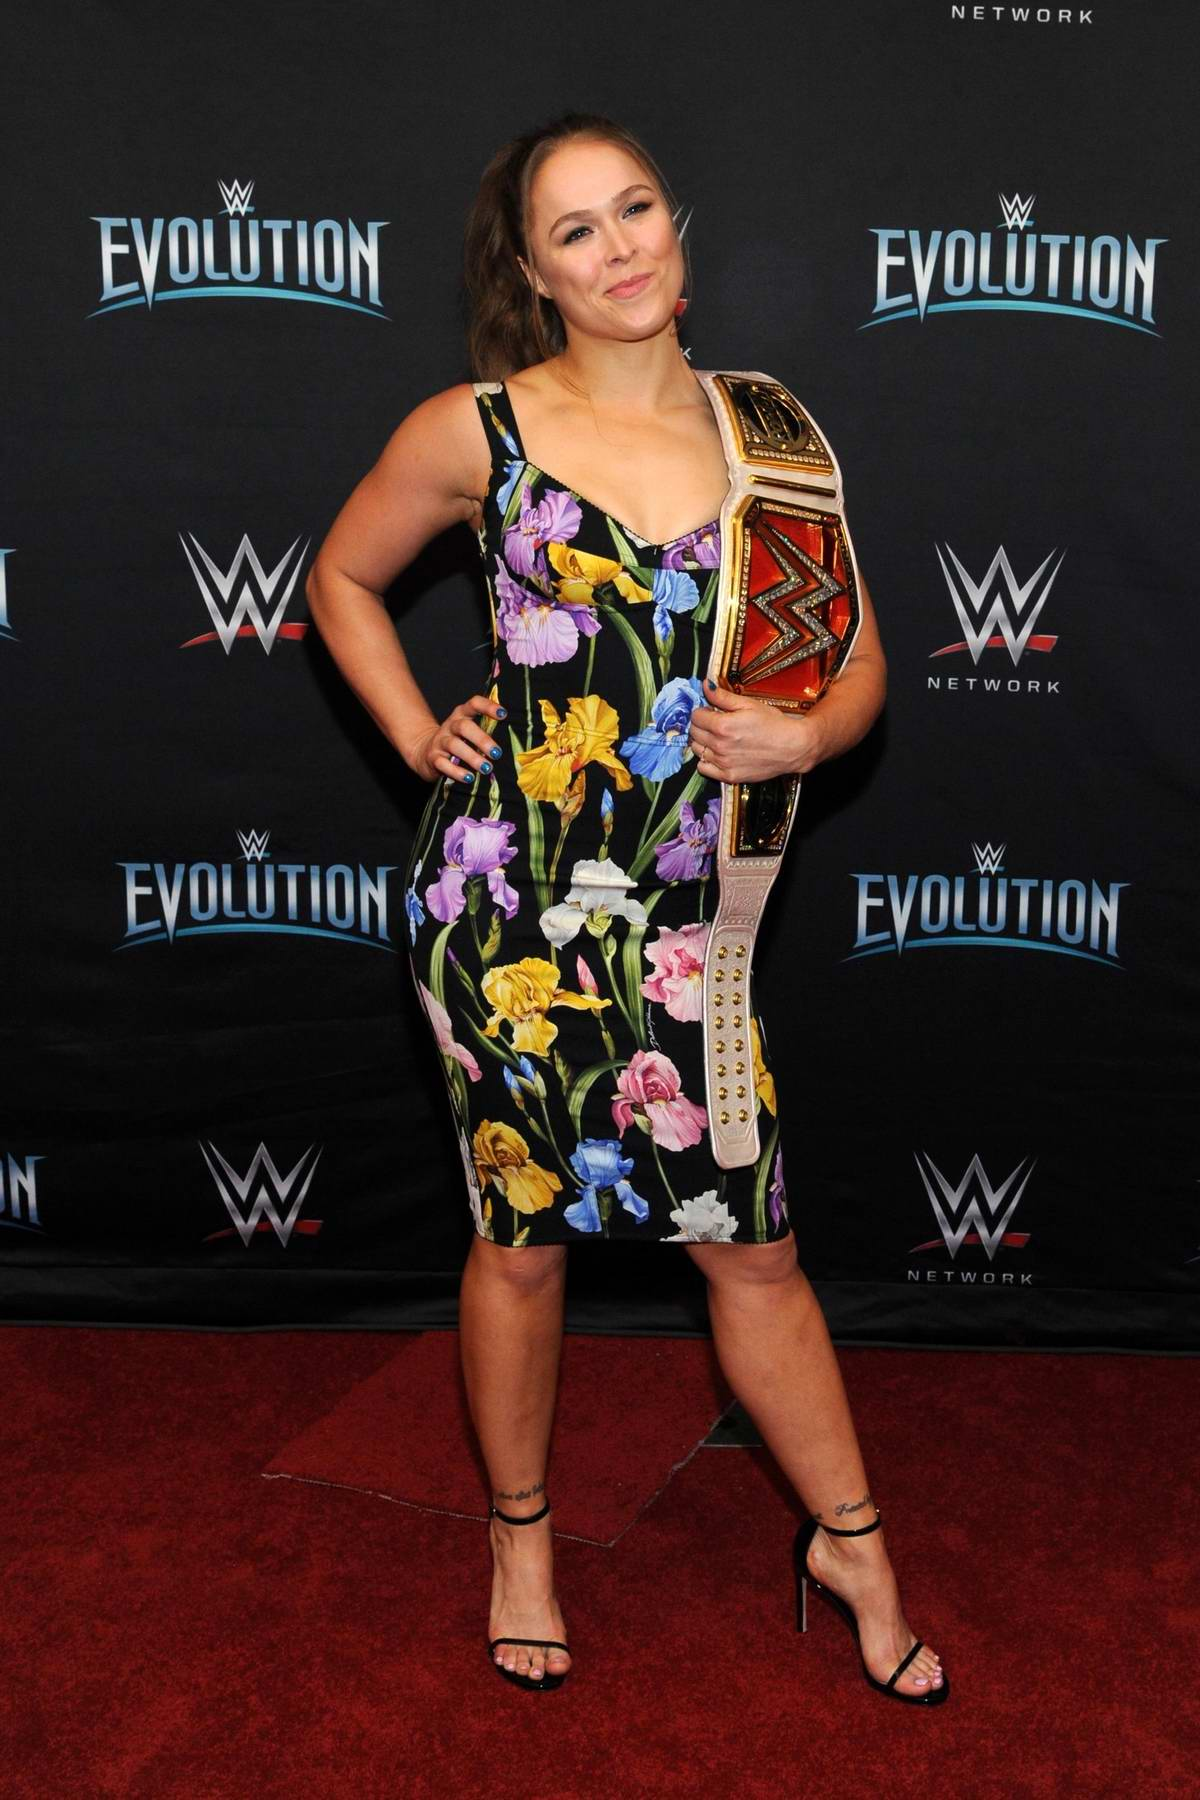 Ronda Rousey attends the WWE's first ever all-women's event 'Evolution' red carpet at the Nassau Veteran's Memorial Coliseum in Uniondale, New York